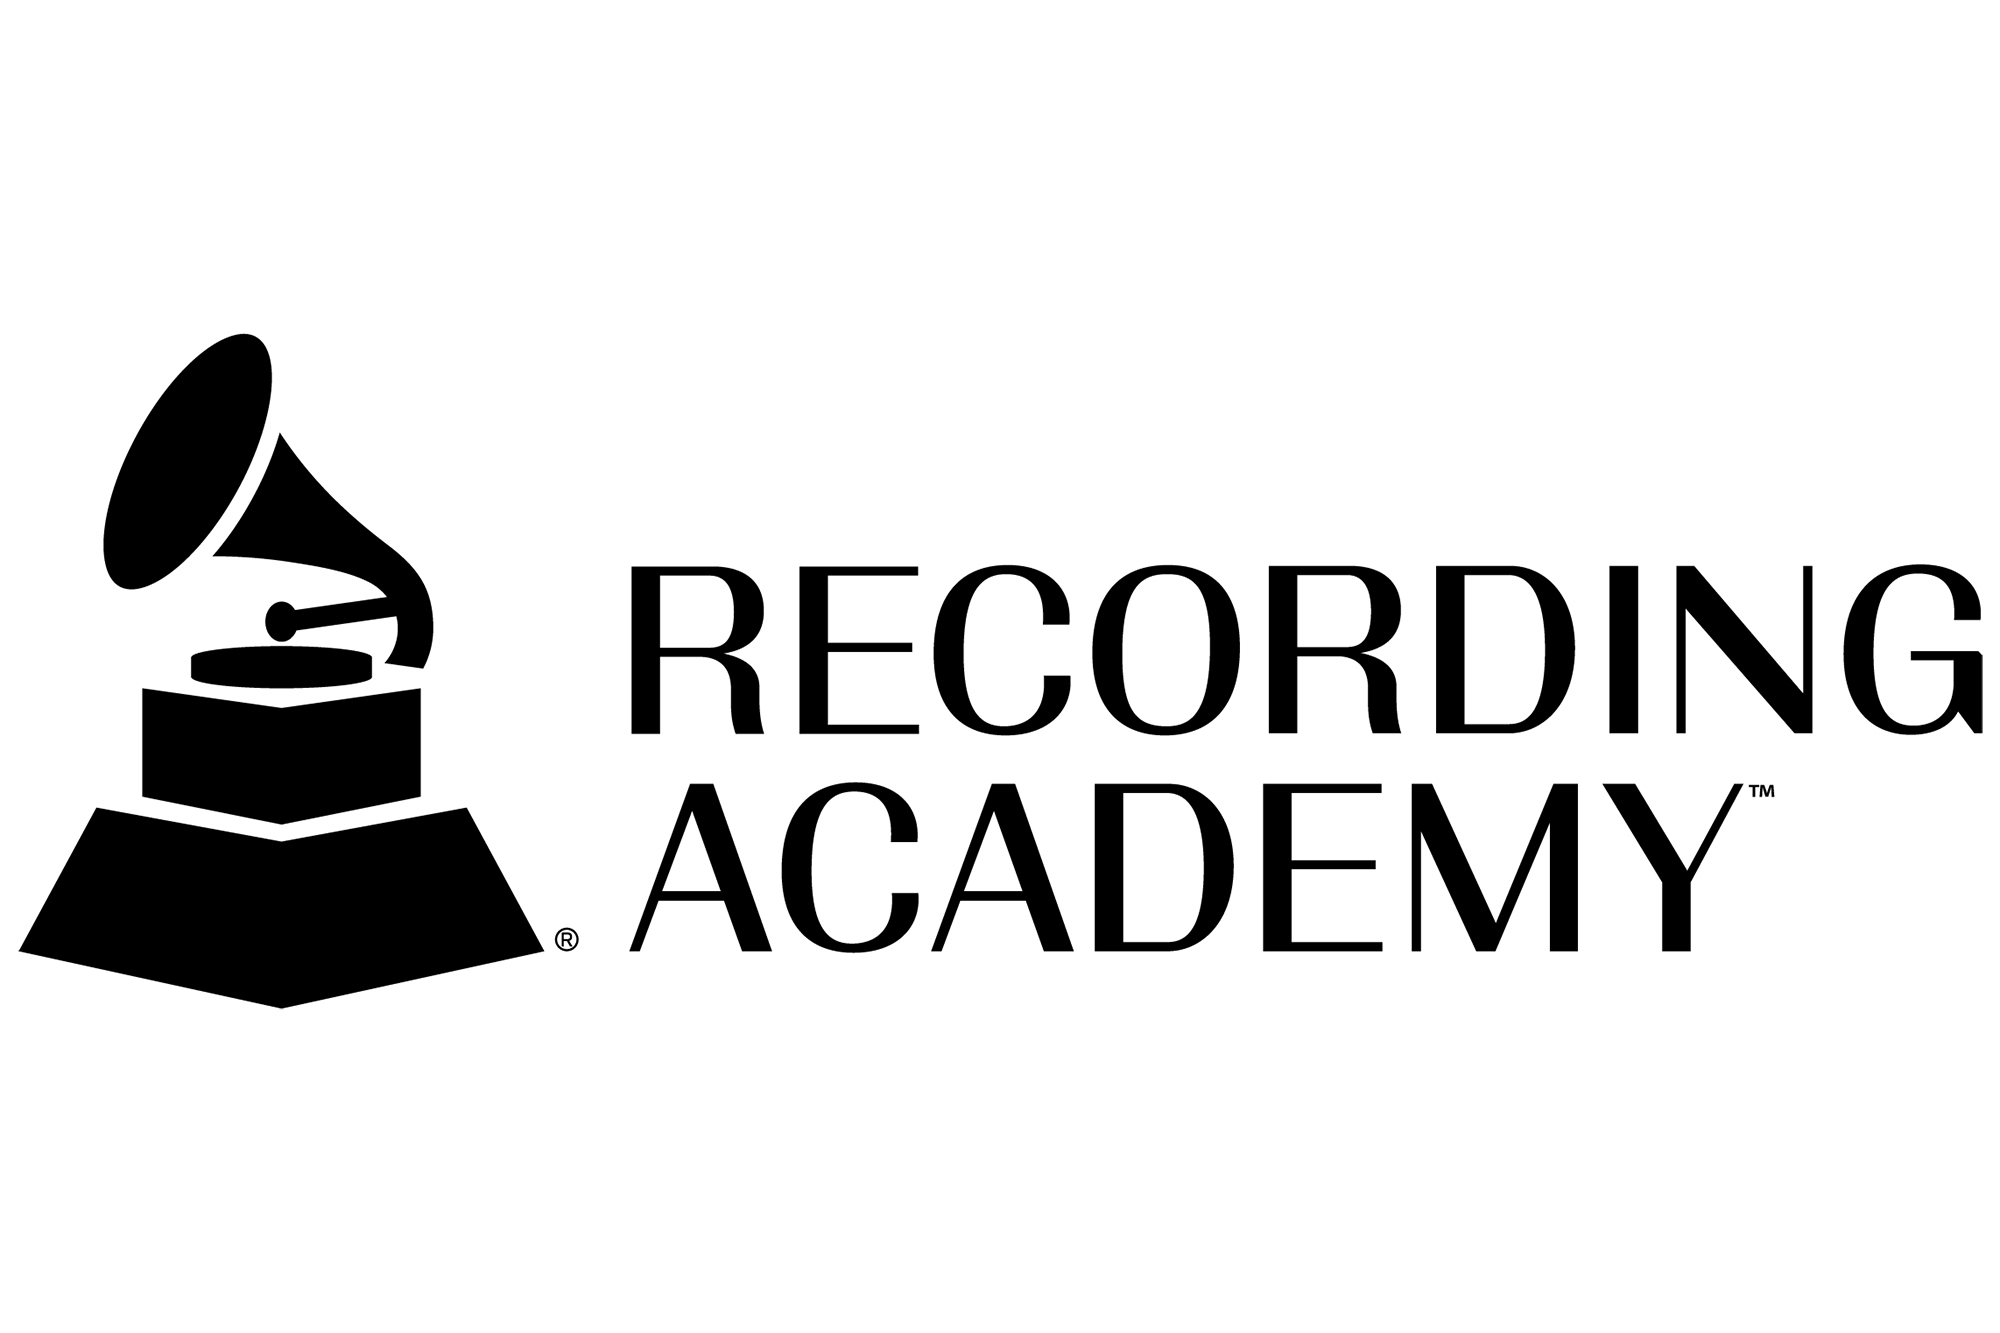 61st Annual Grammy Awards Nominees And Winners: 61st Annual Grammy Awards Set For Feb. 10 : MusicRow